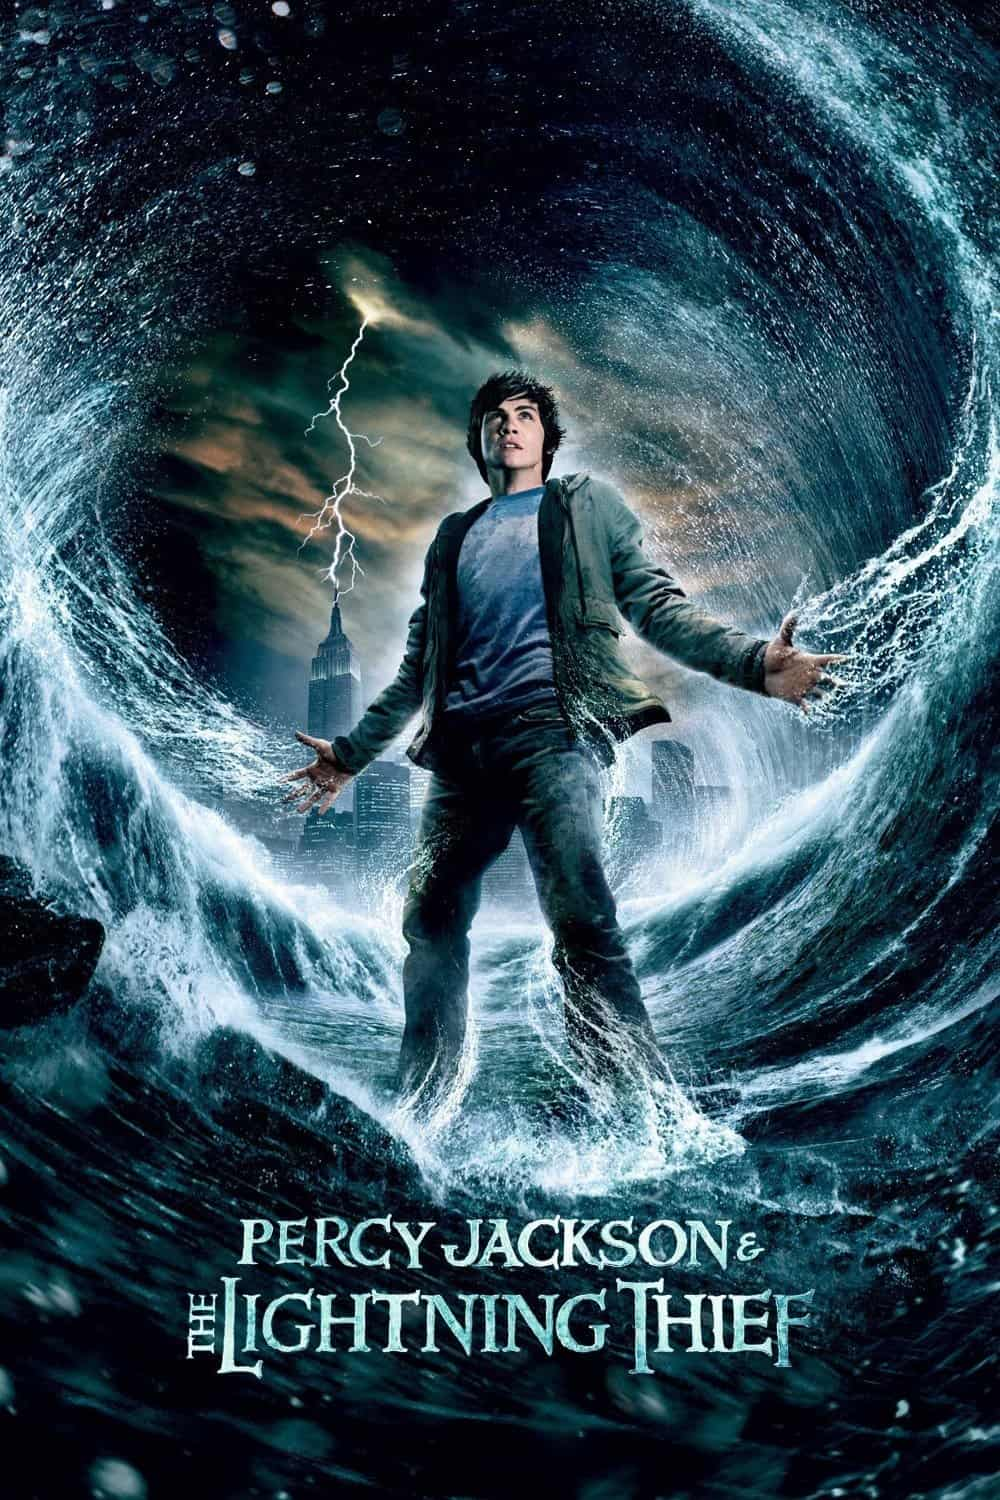 Percy Jackson and the Olympians: The Lightning Thief, 2010